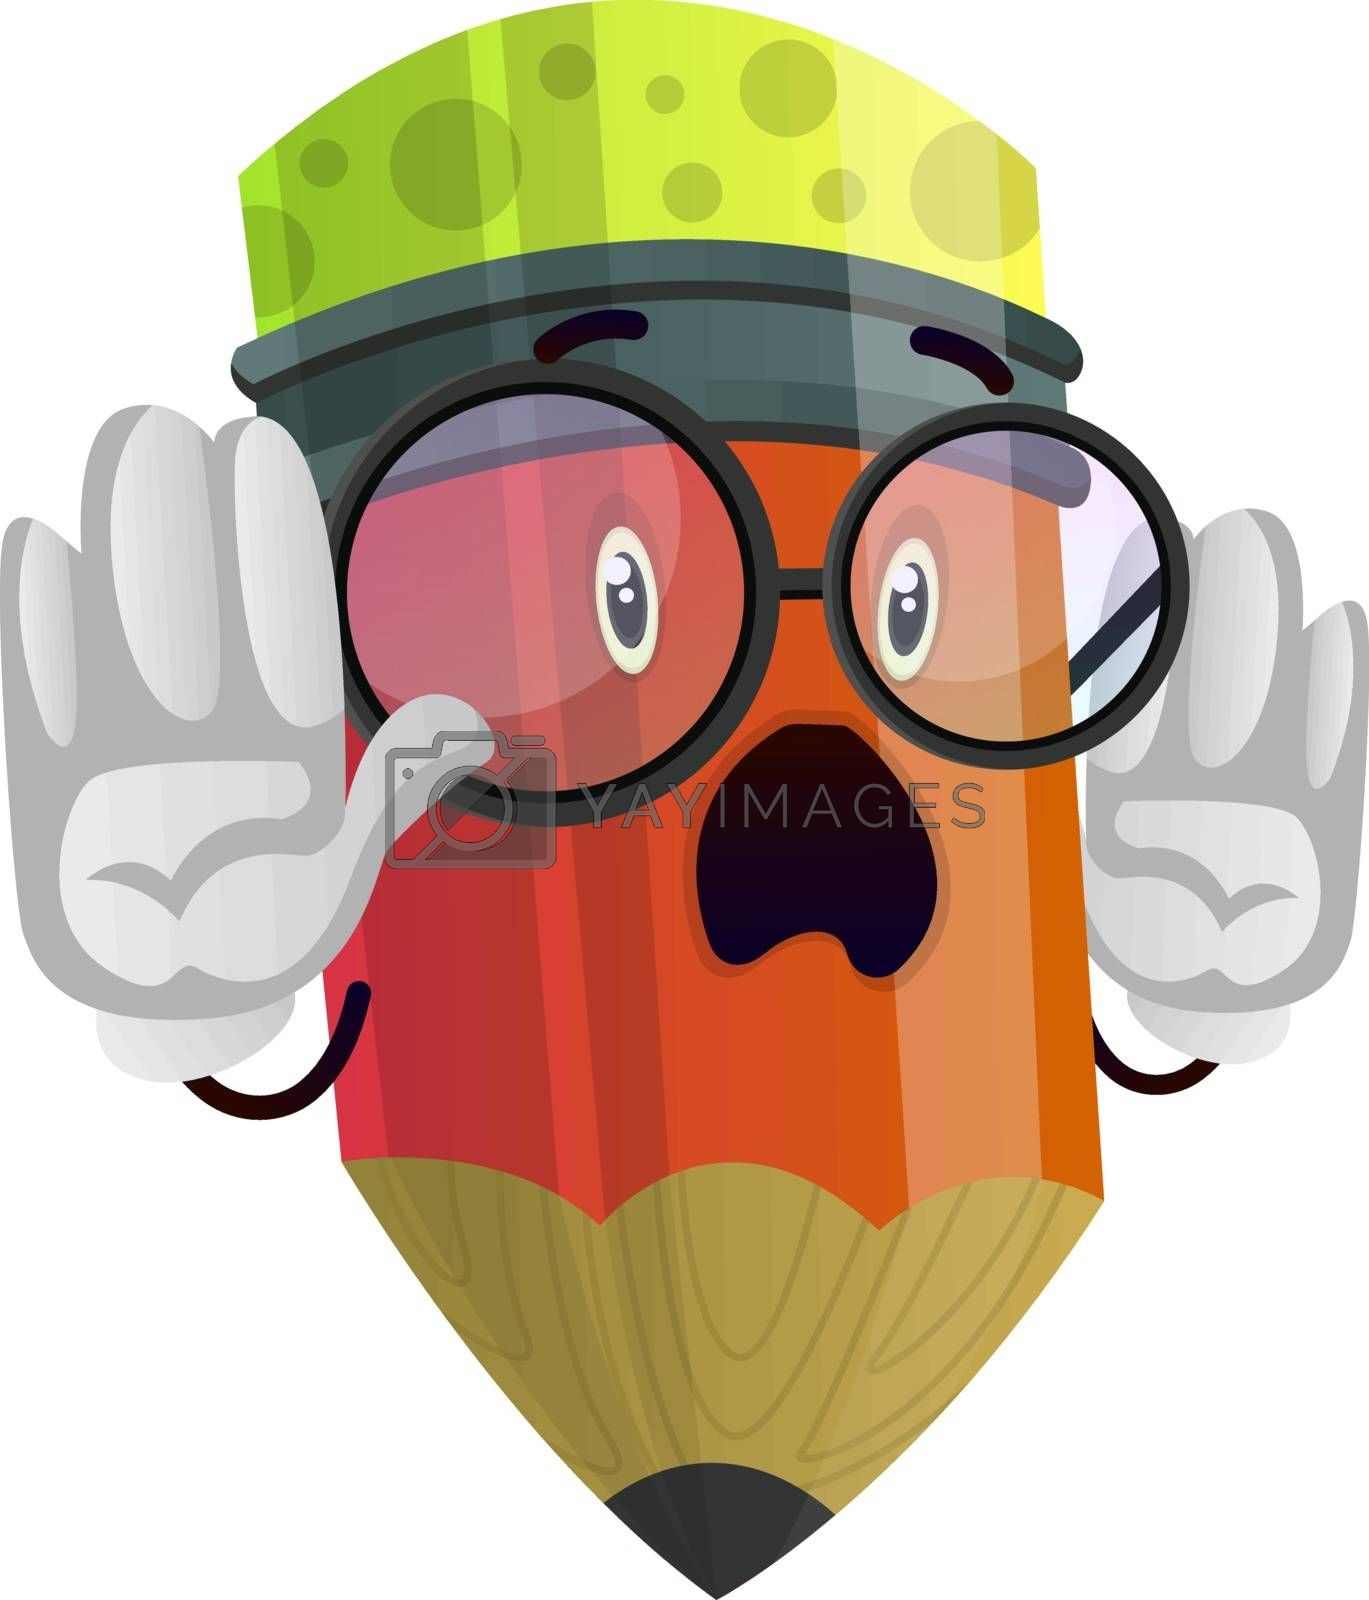 Royalty free image of Pencil holding his hands up illustration vector on white backgro by Morphart